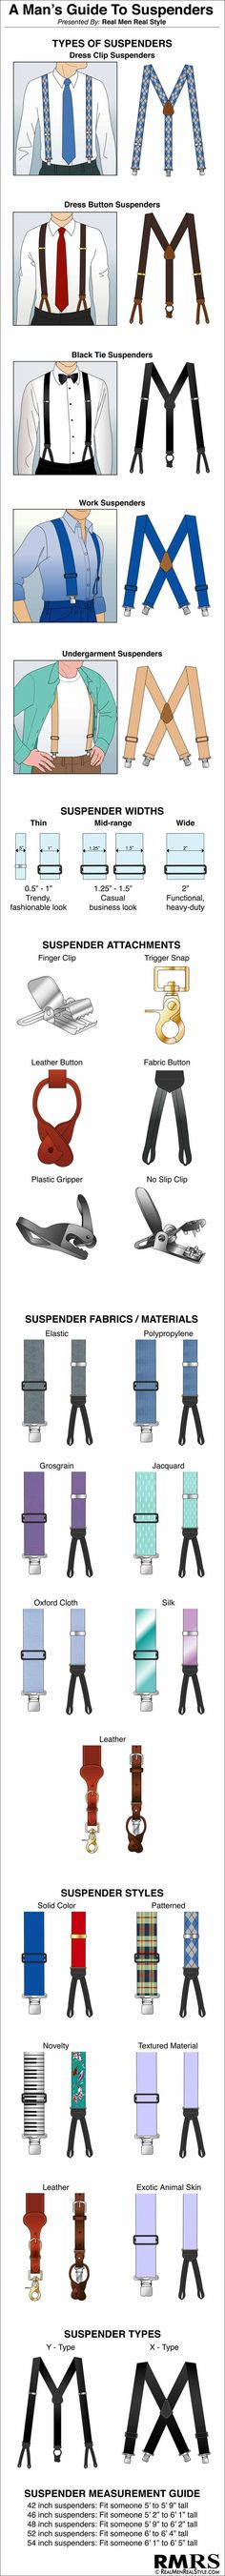 Man's Guide To Suspenders